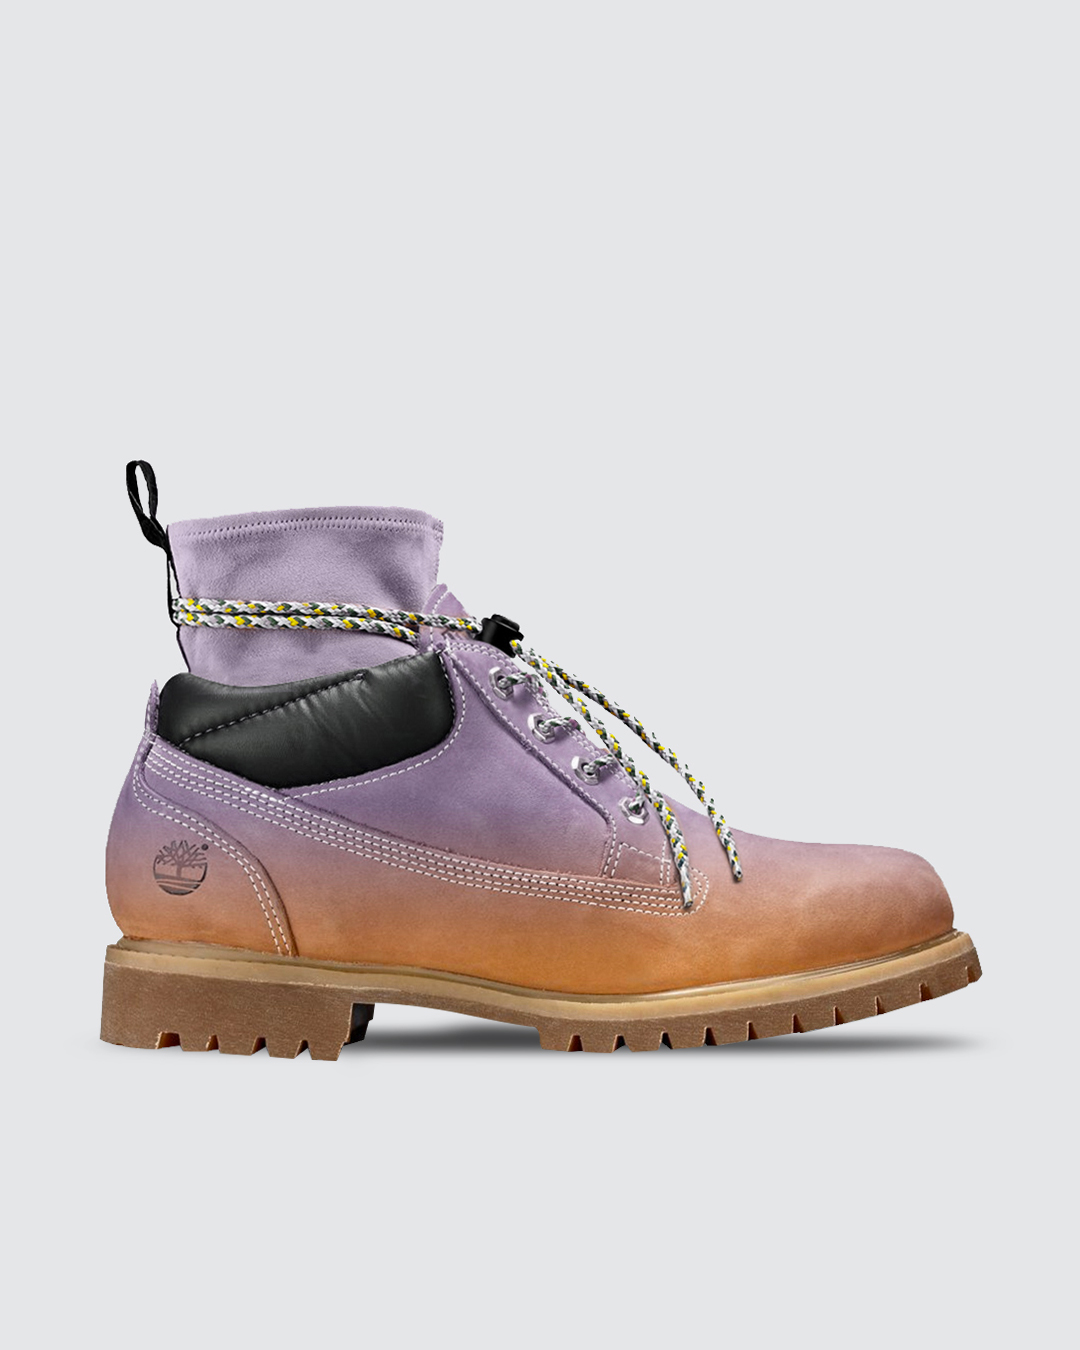 Source: William Hildebrand – Footwear concept